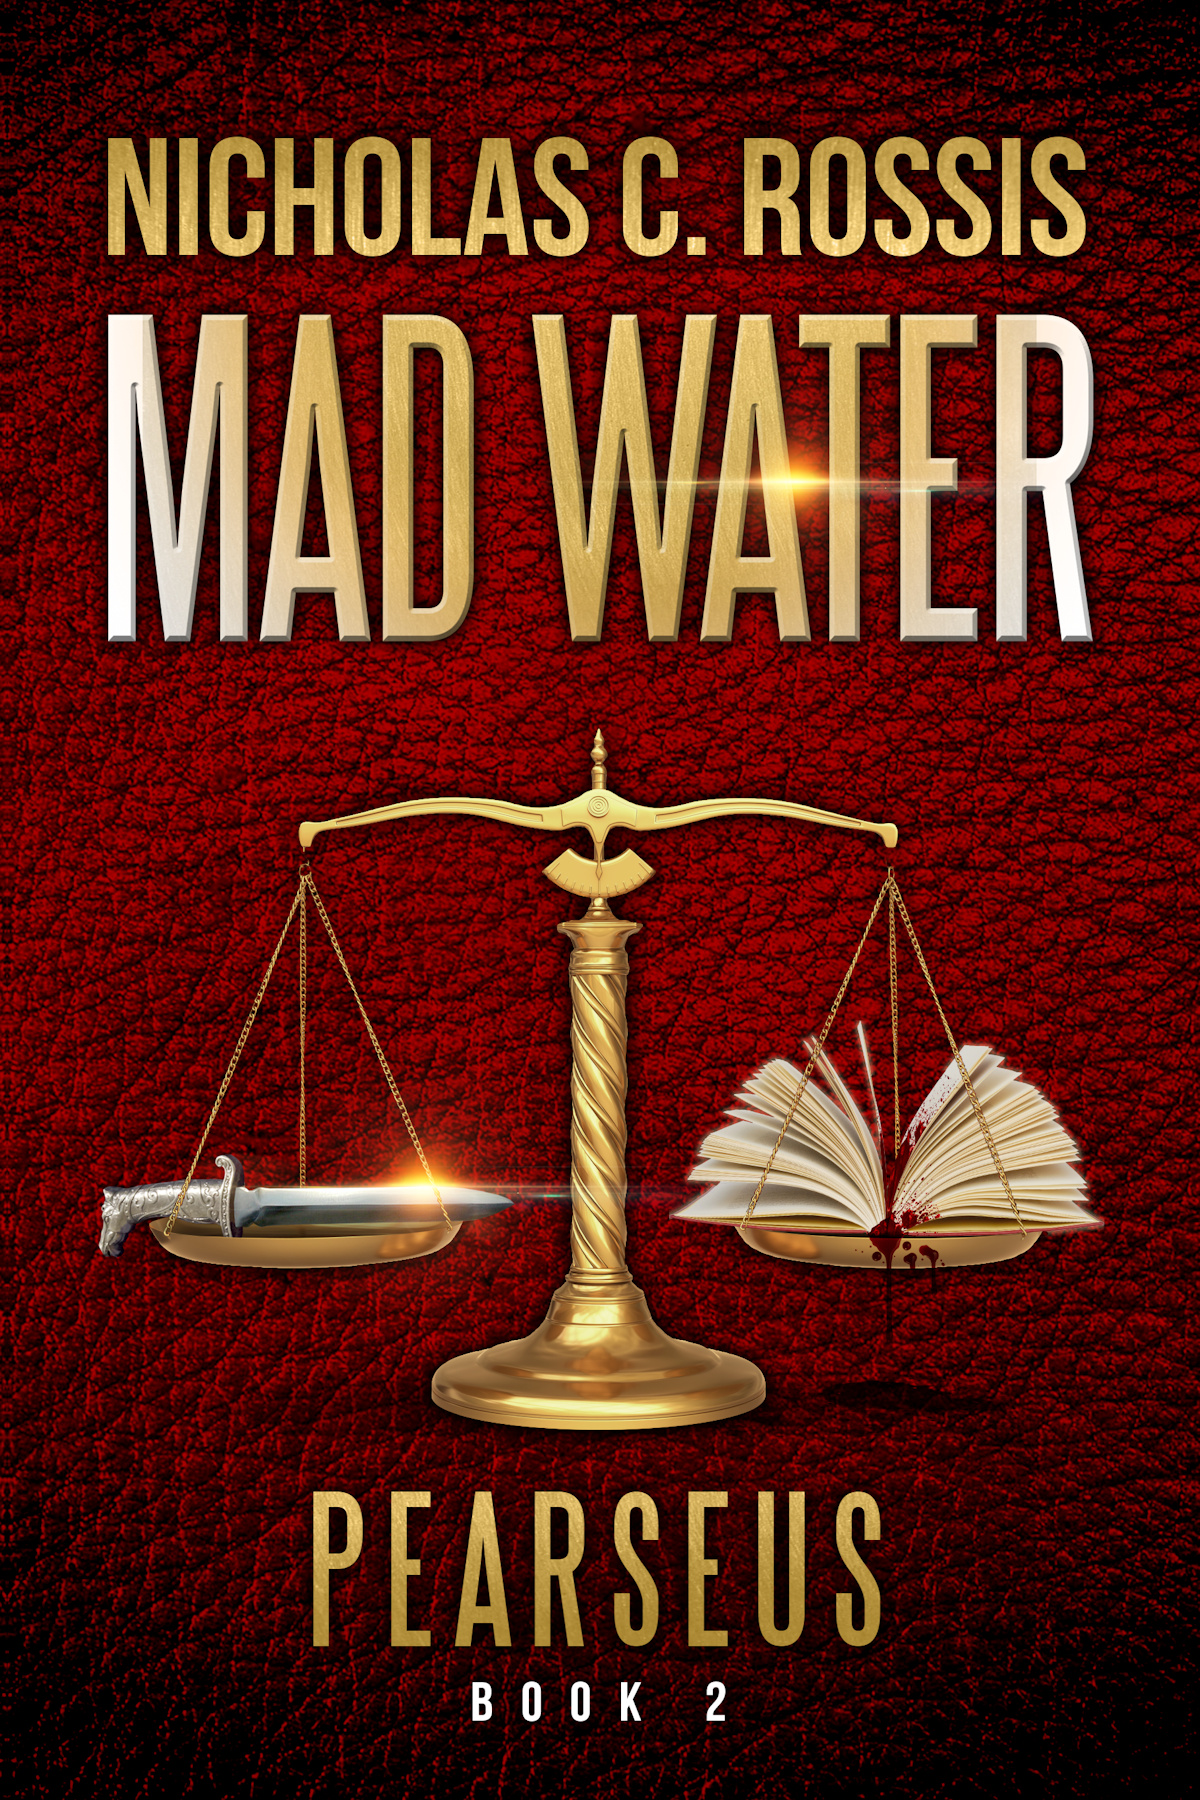 Pearseus: Mad Water (Book 2)